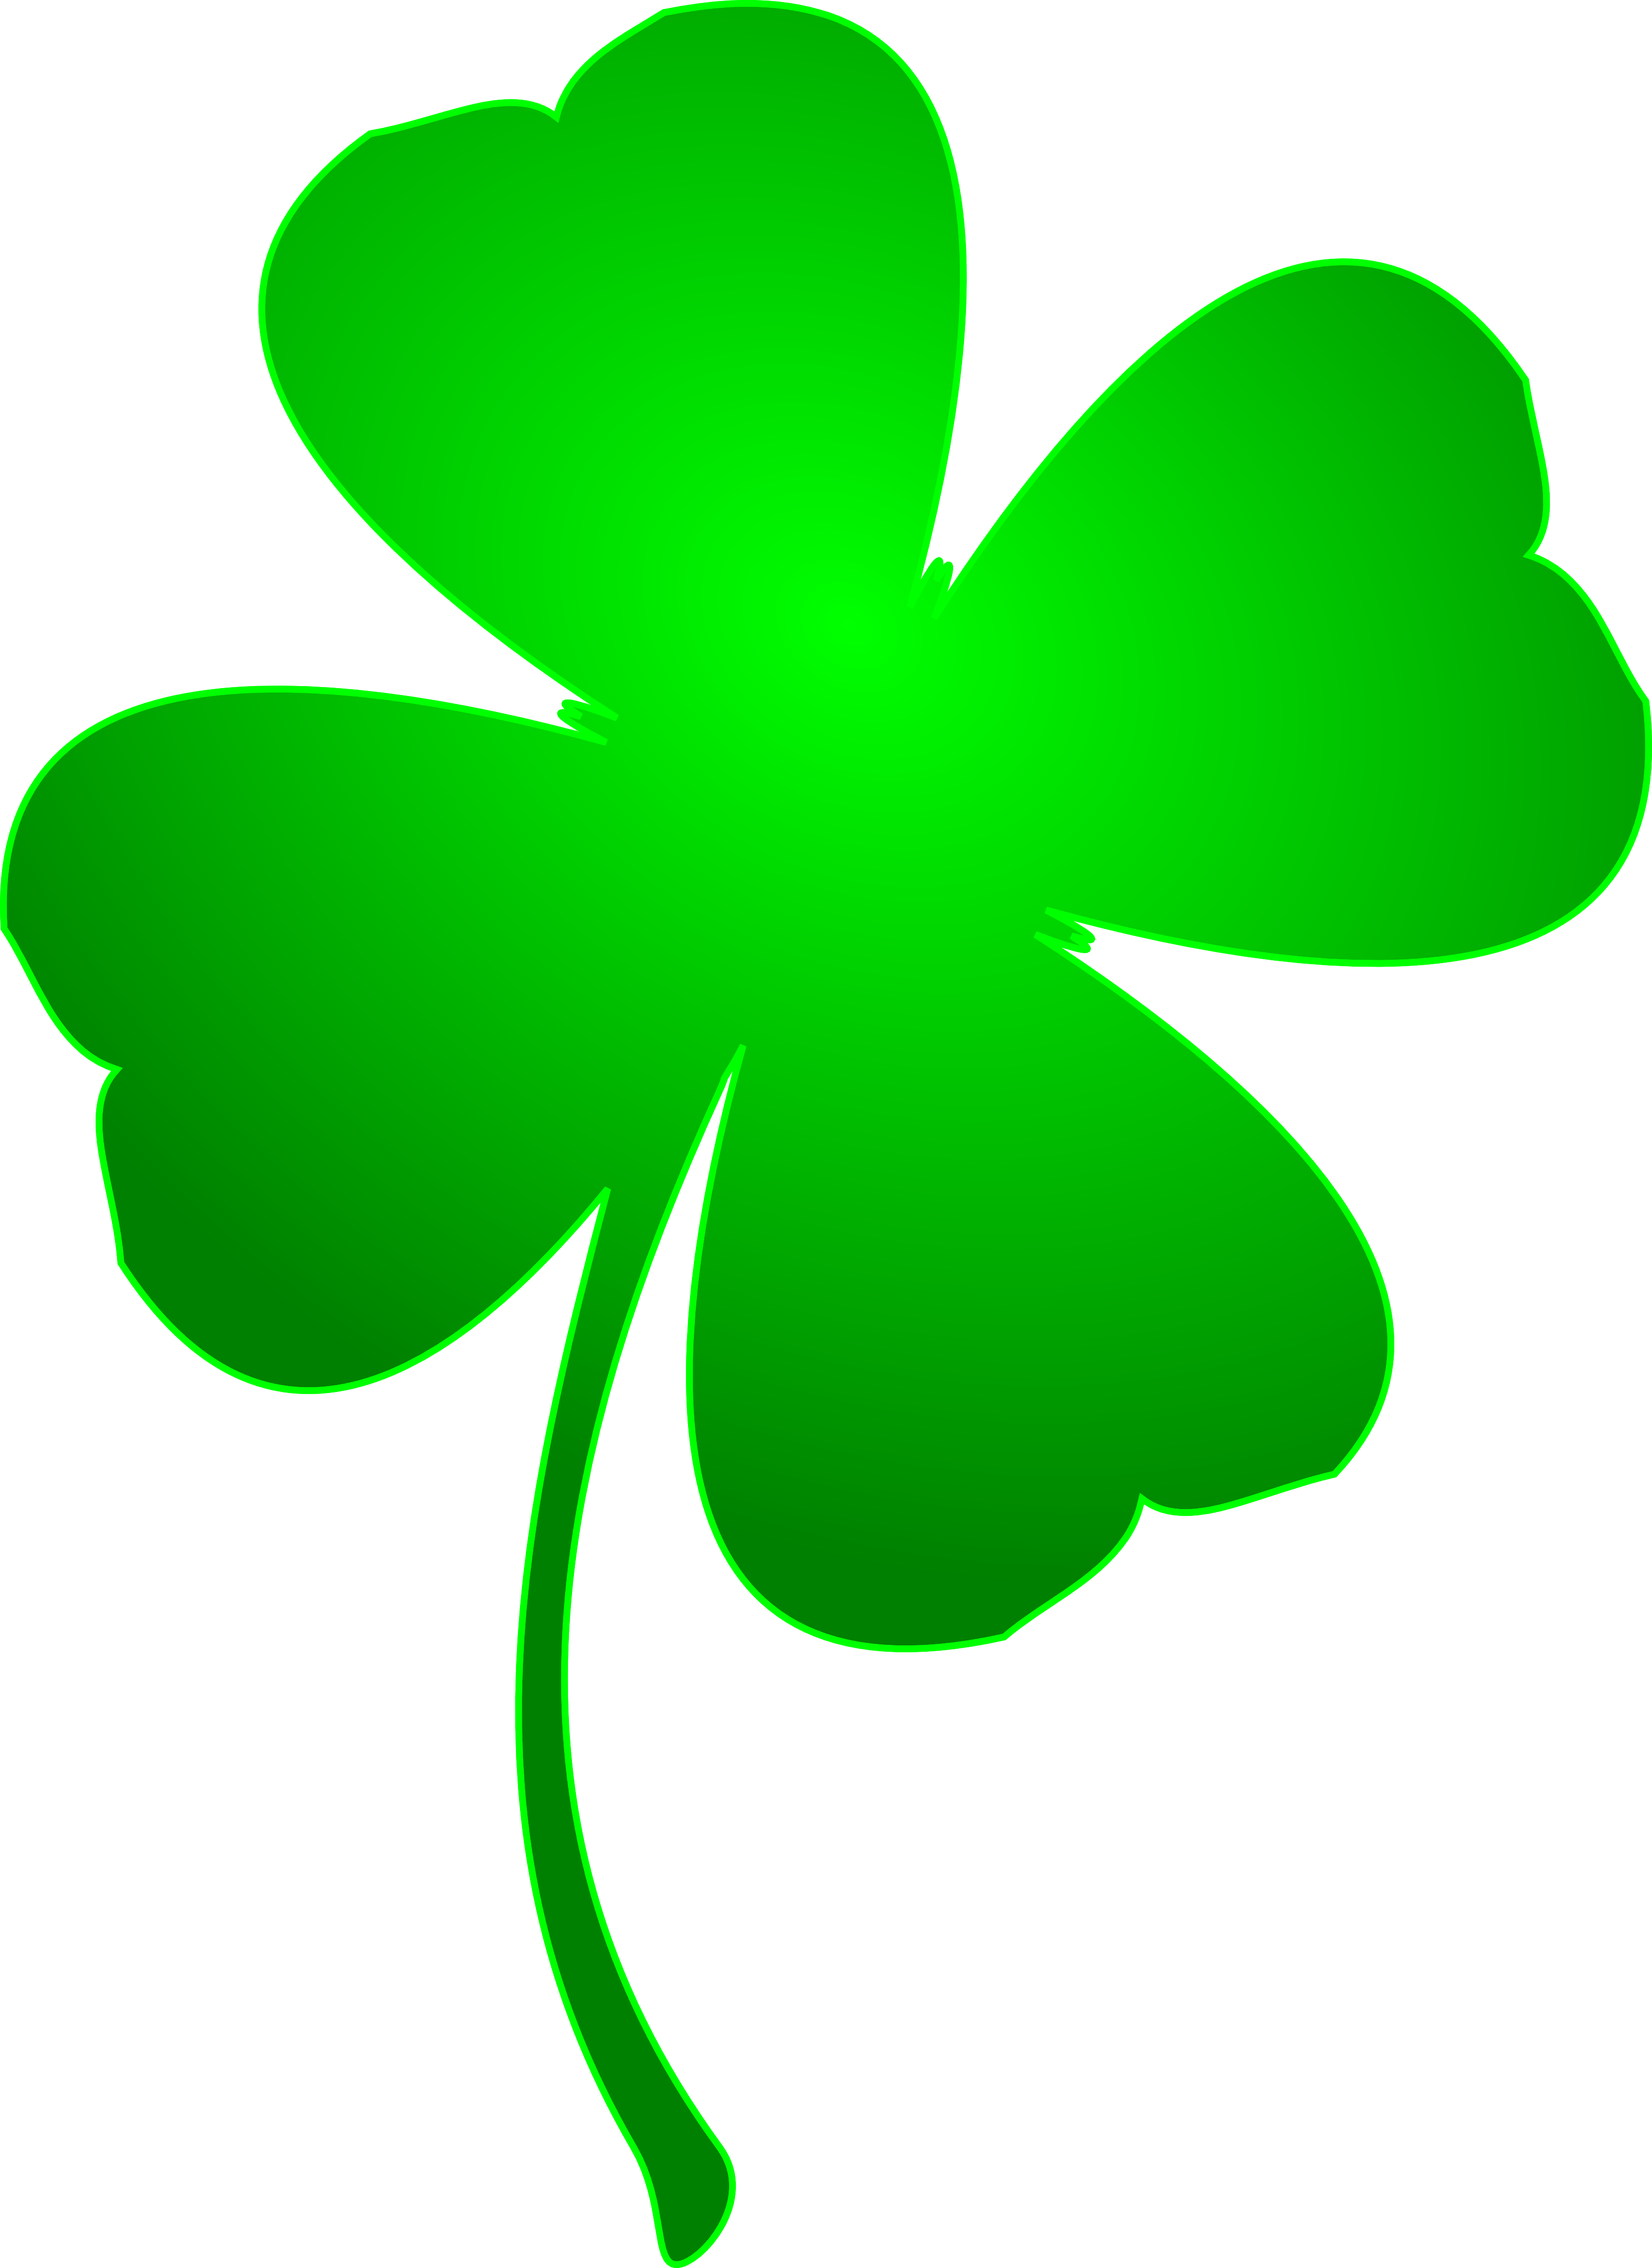 Irish clipart backgrounds clipart images gallery for free.